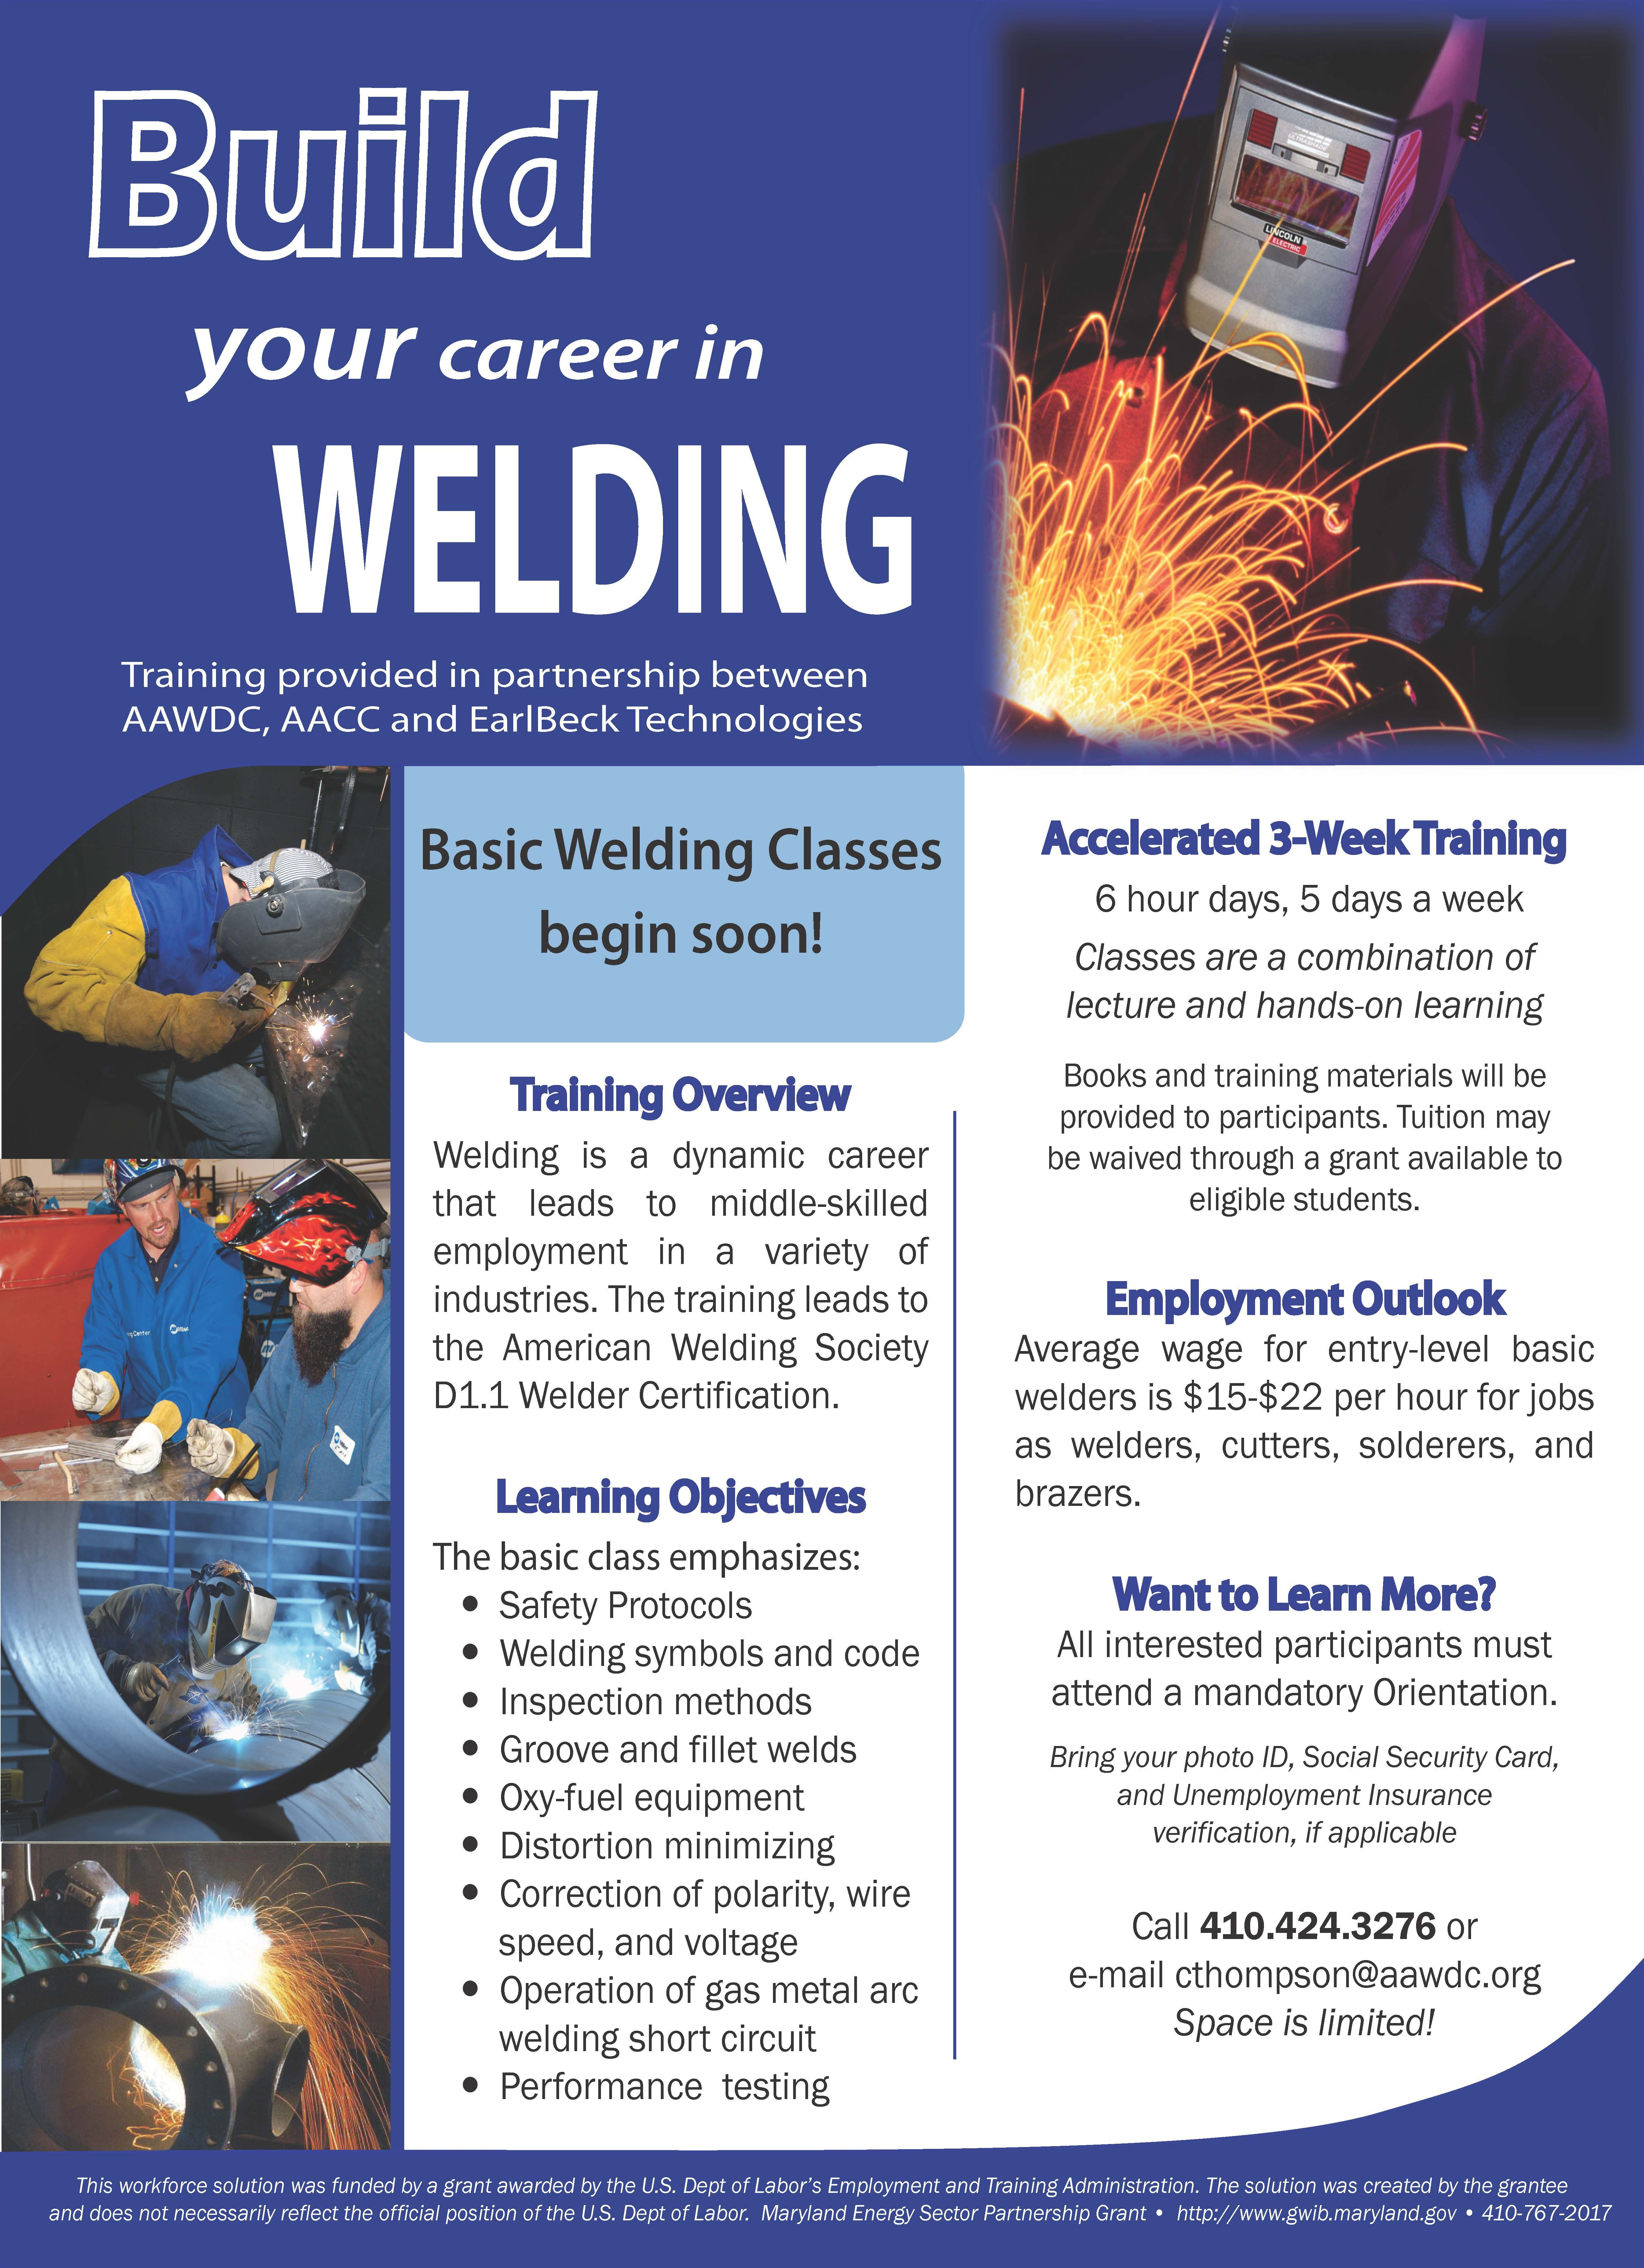 A flyer i designed for a welding training workplace